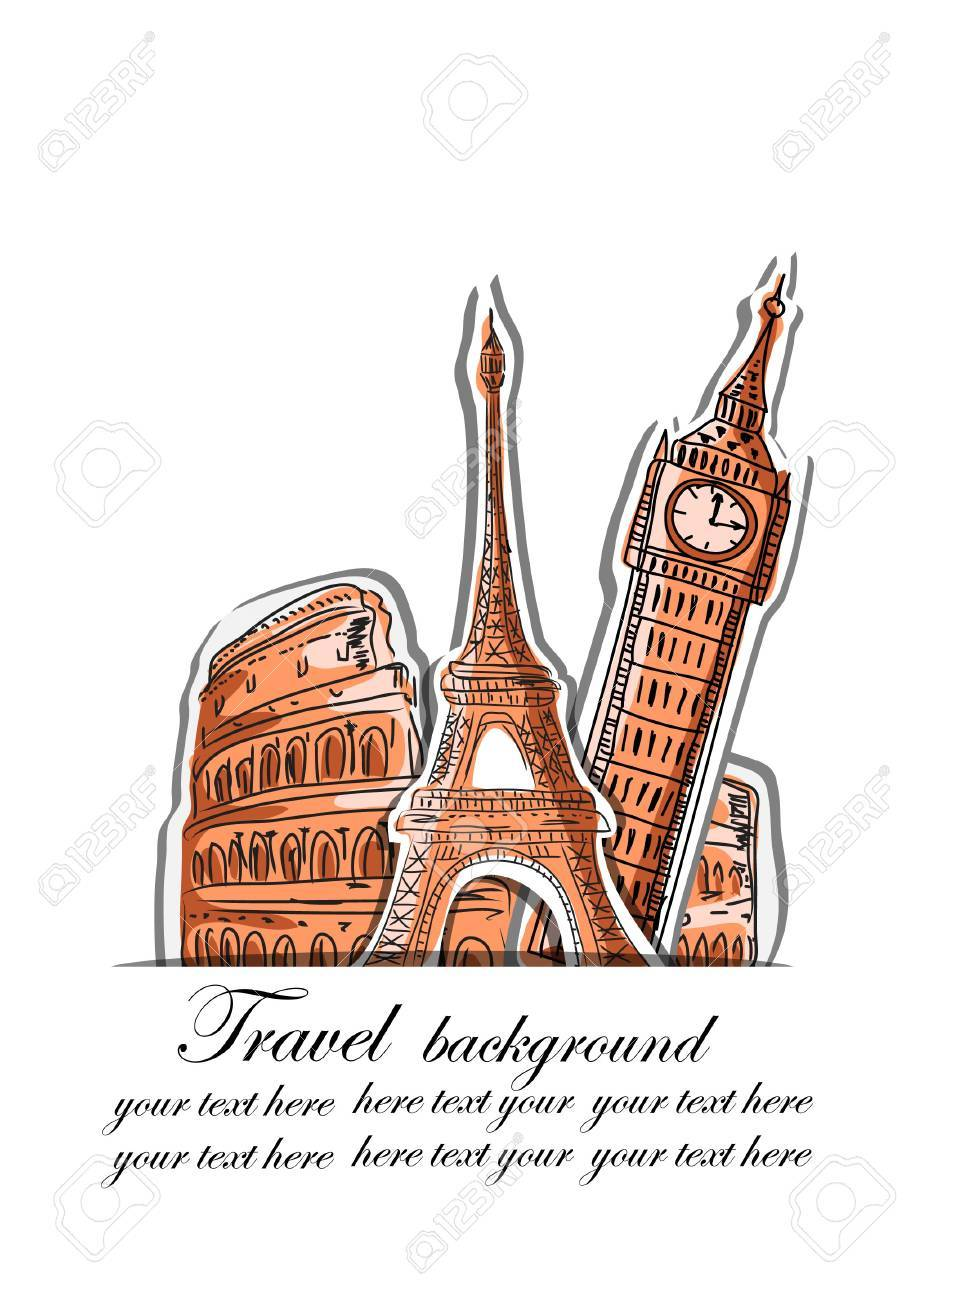 Travel background Stock Vector - 17416332